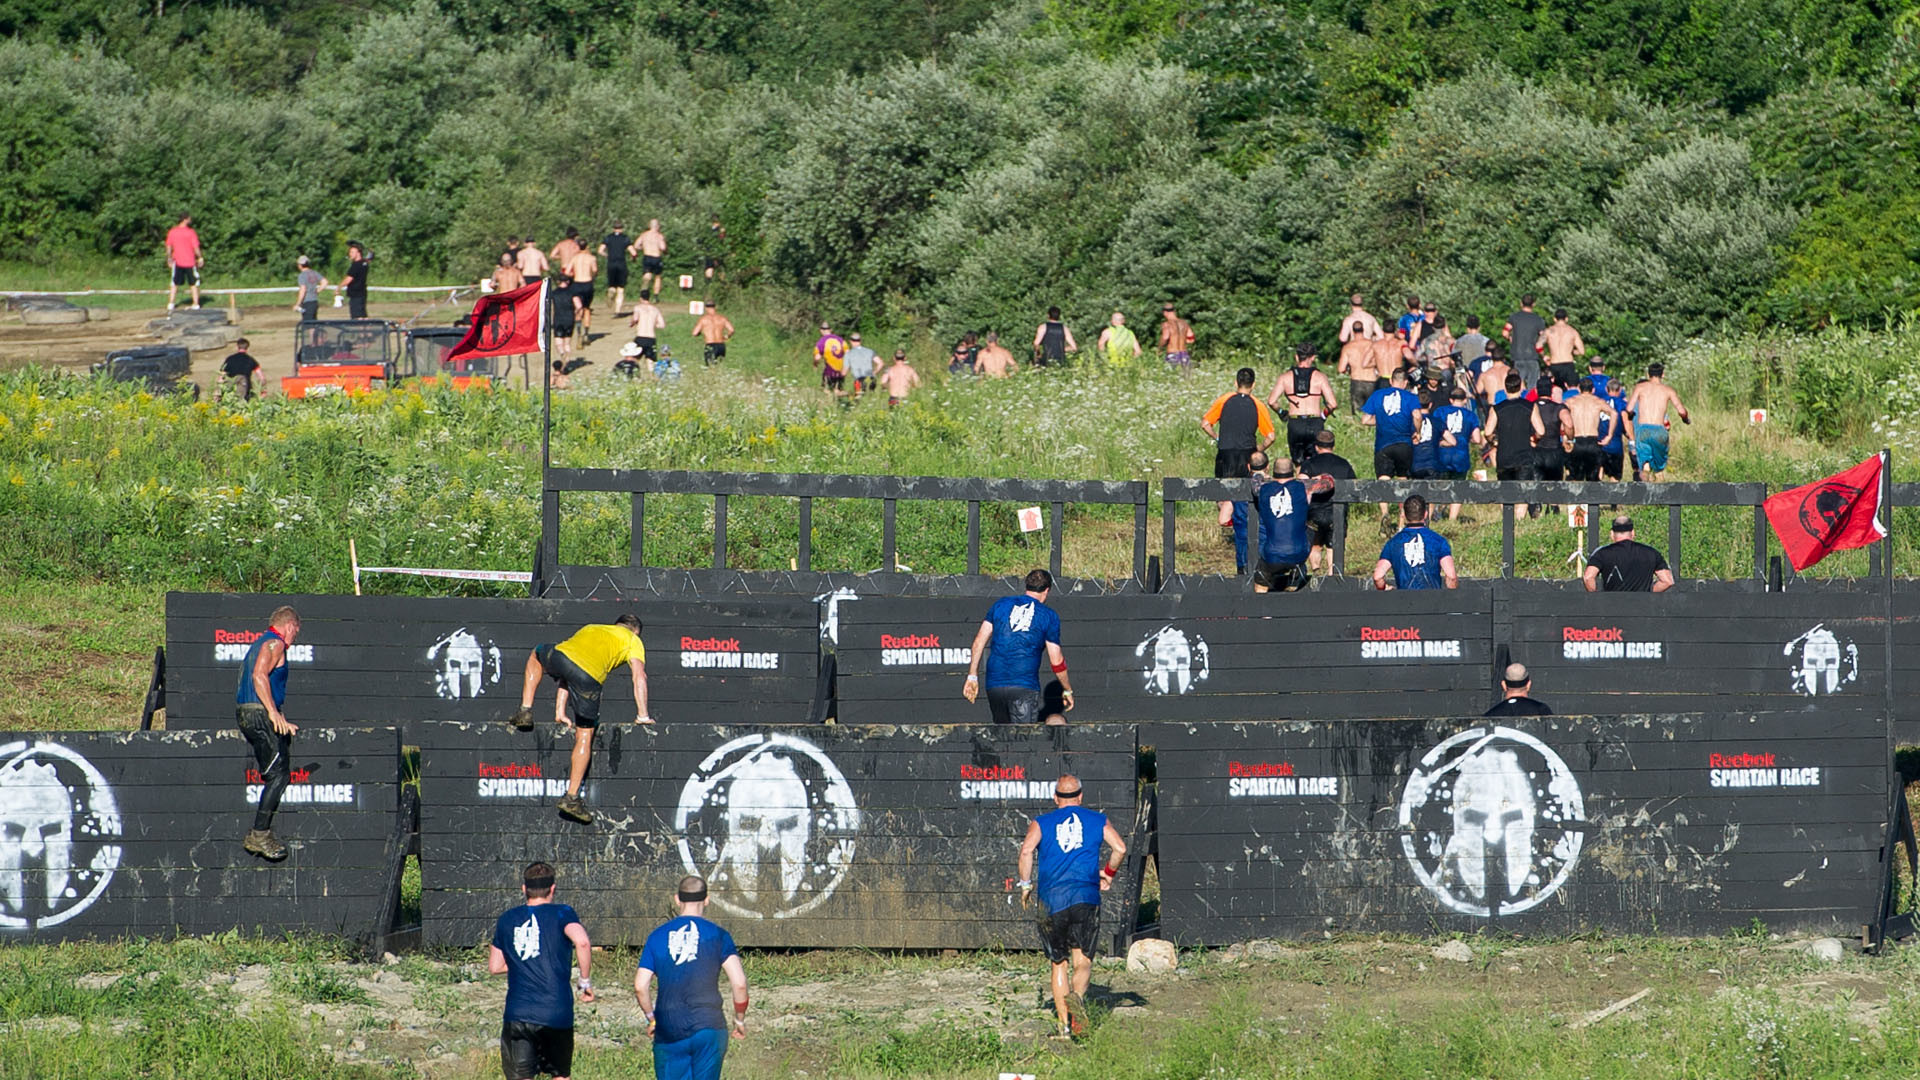 Spartan Race Inc. Obstacle Course Races | Race Obstacles | Obstacle Details